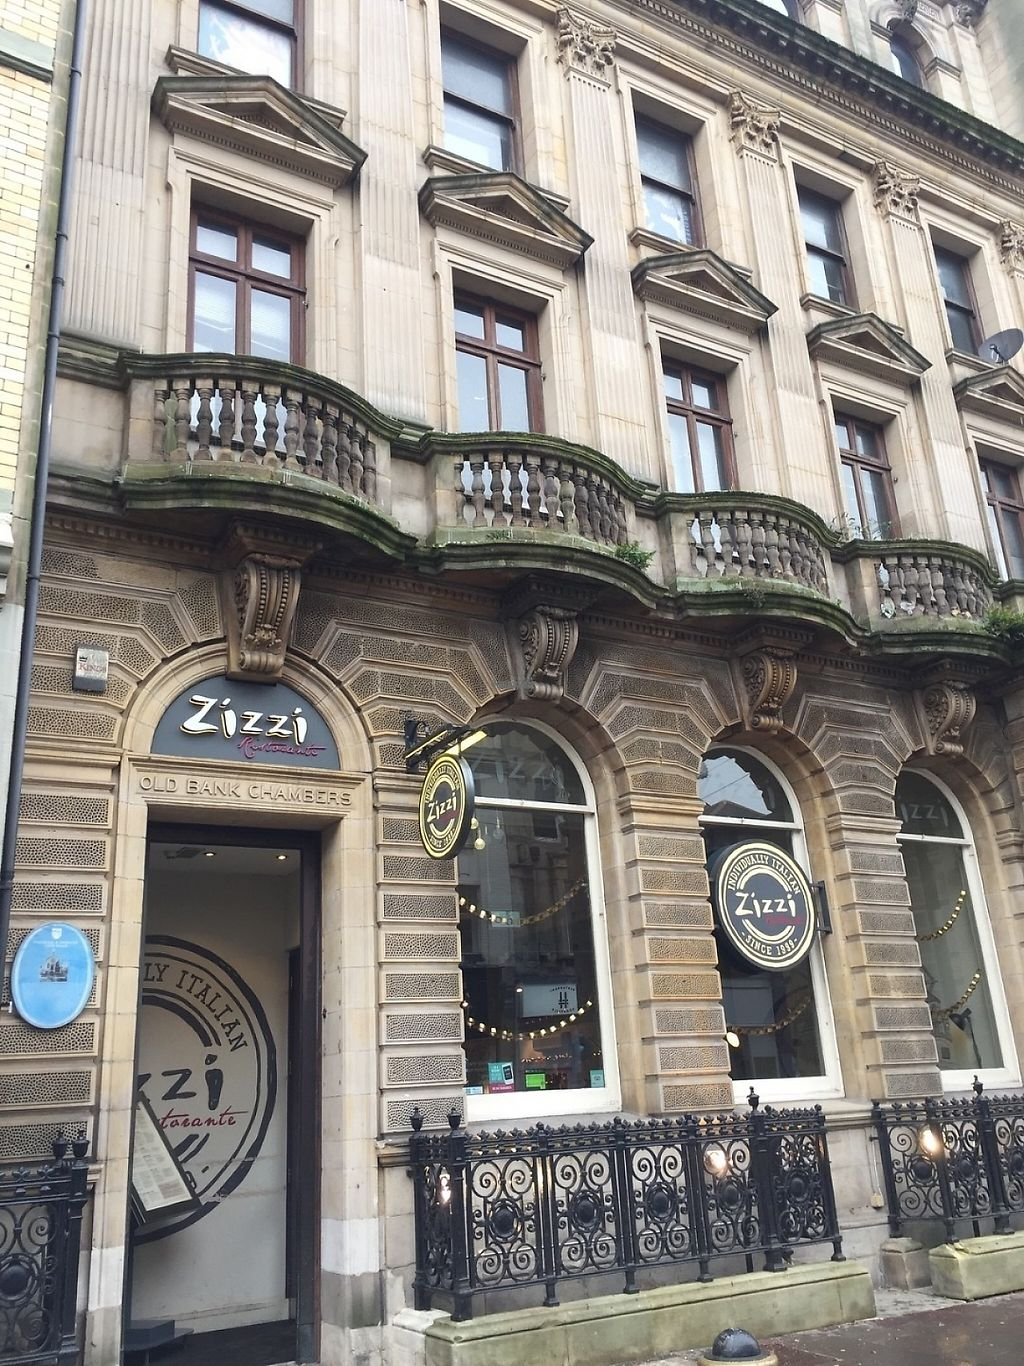 "Photo of Zizzi - High St  by <a href=""/members/profile/Eseno"">Eseno</a> <br/>Entrance to Zizzi in Cardiff <br/> December 30, 2016  - <a href='/contact/abuse/image/71288/206205'>Report</a>"